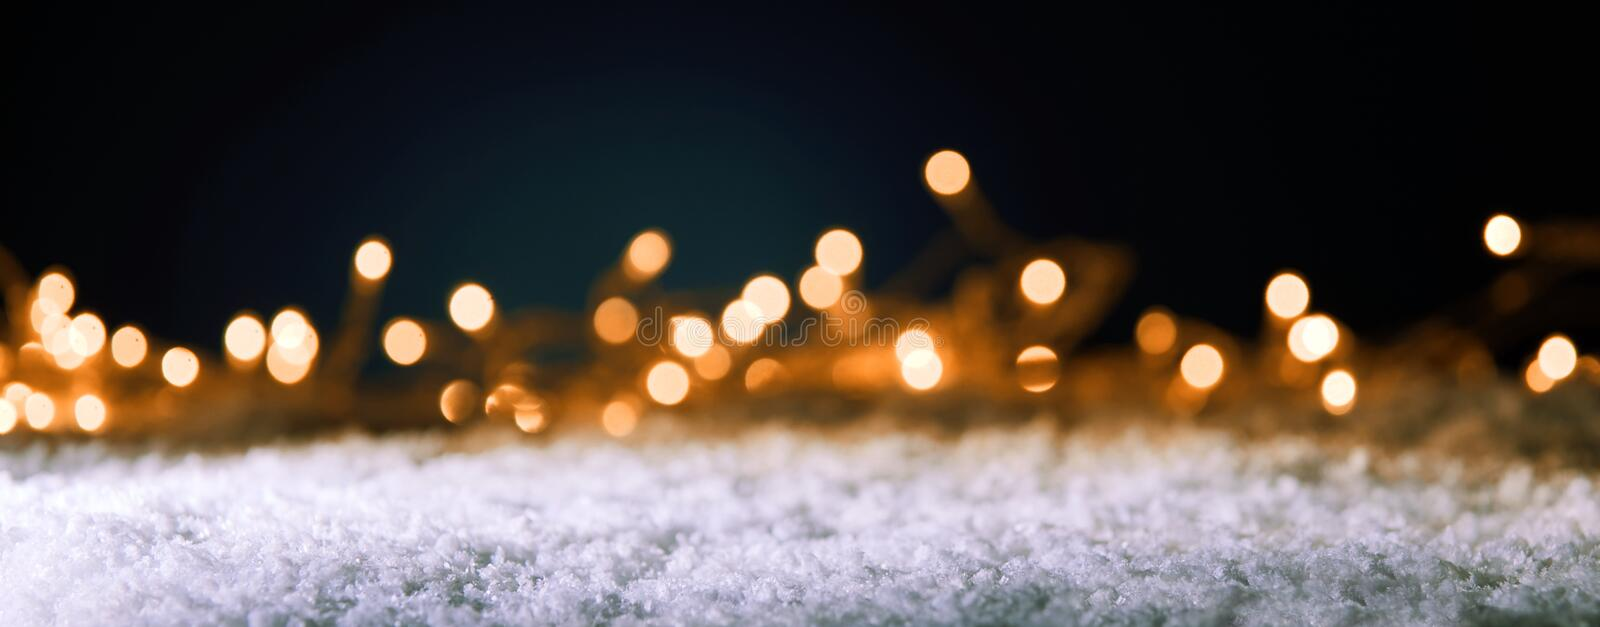 Christmas banner with golden party lights royalty free stock photos